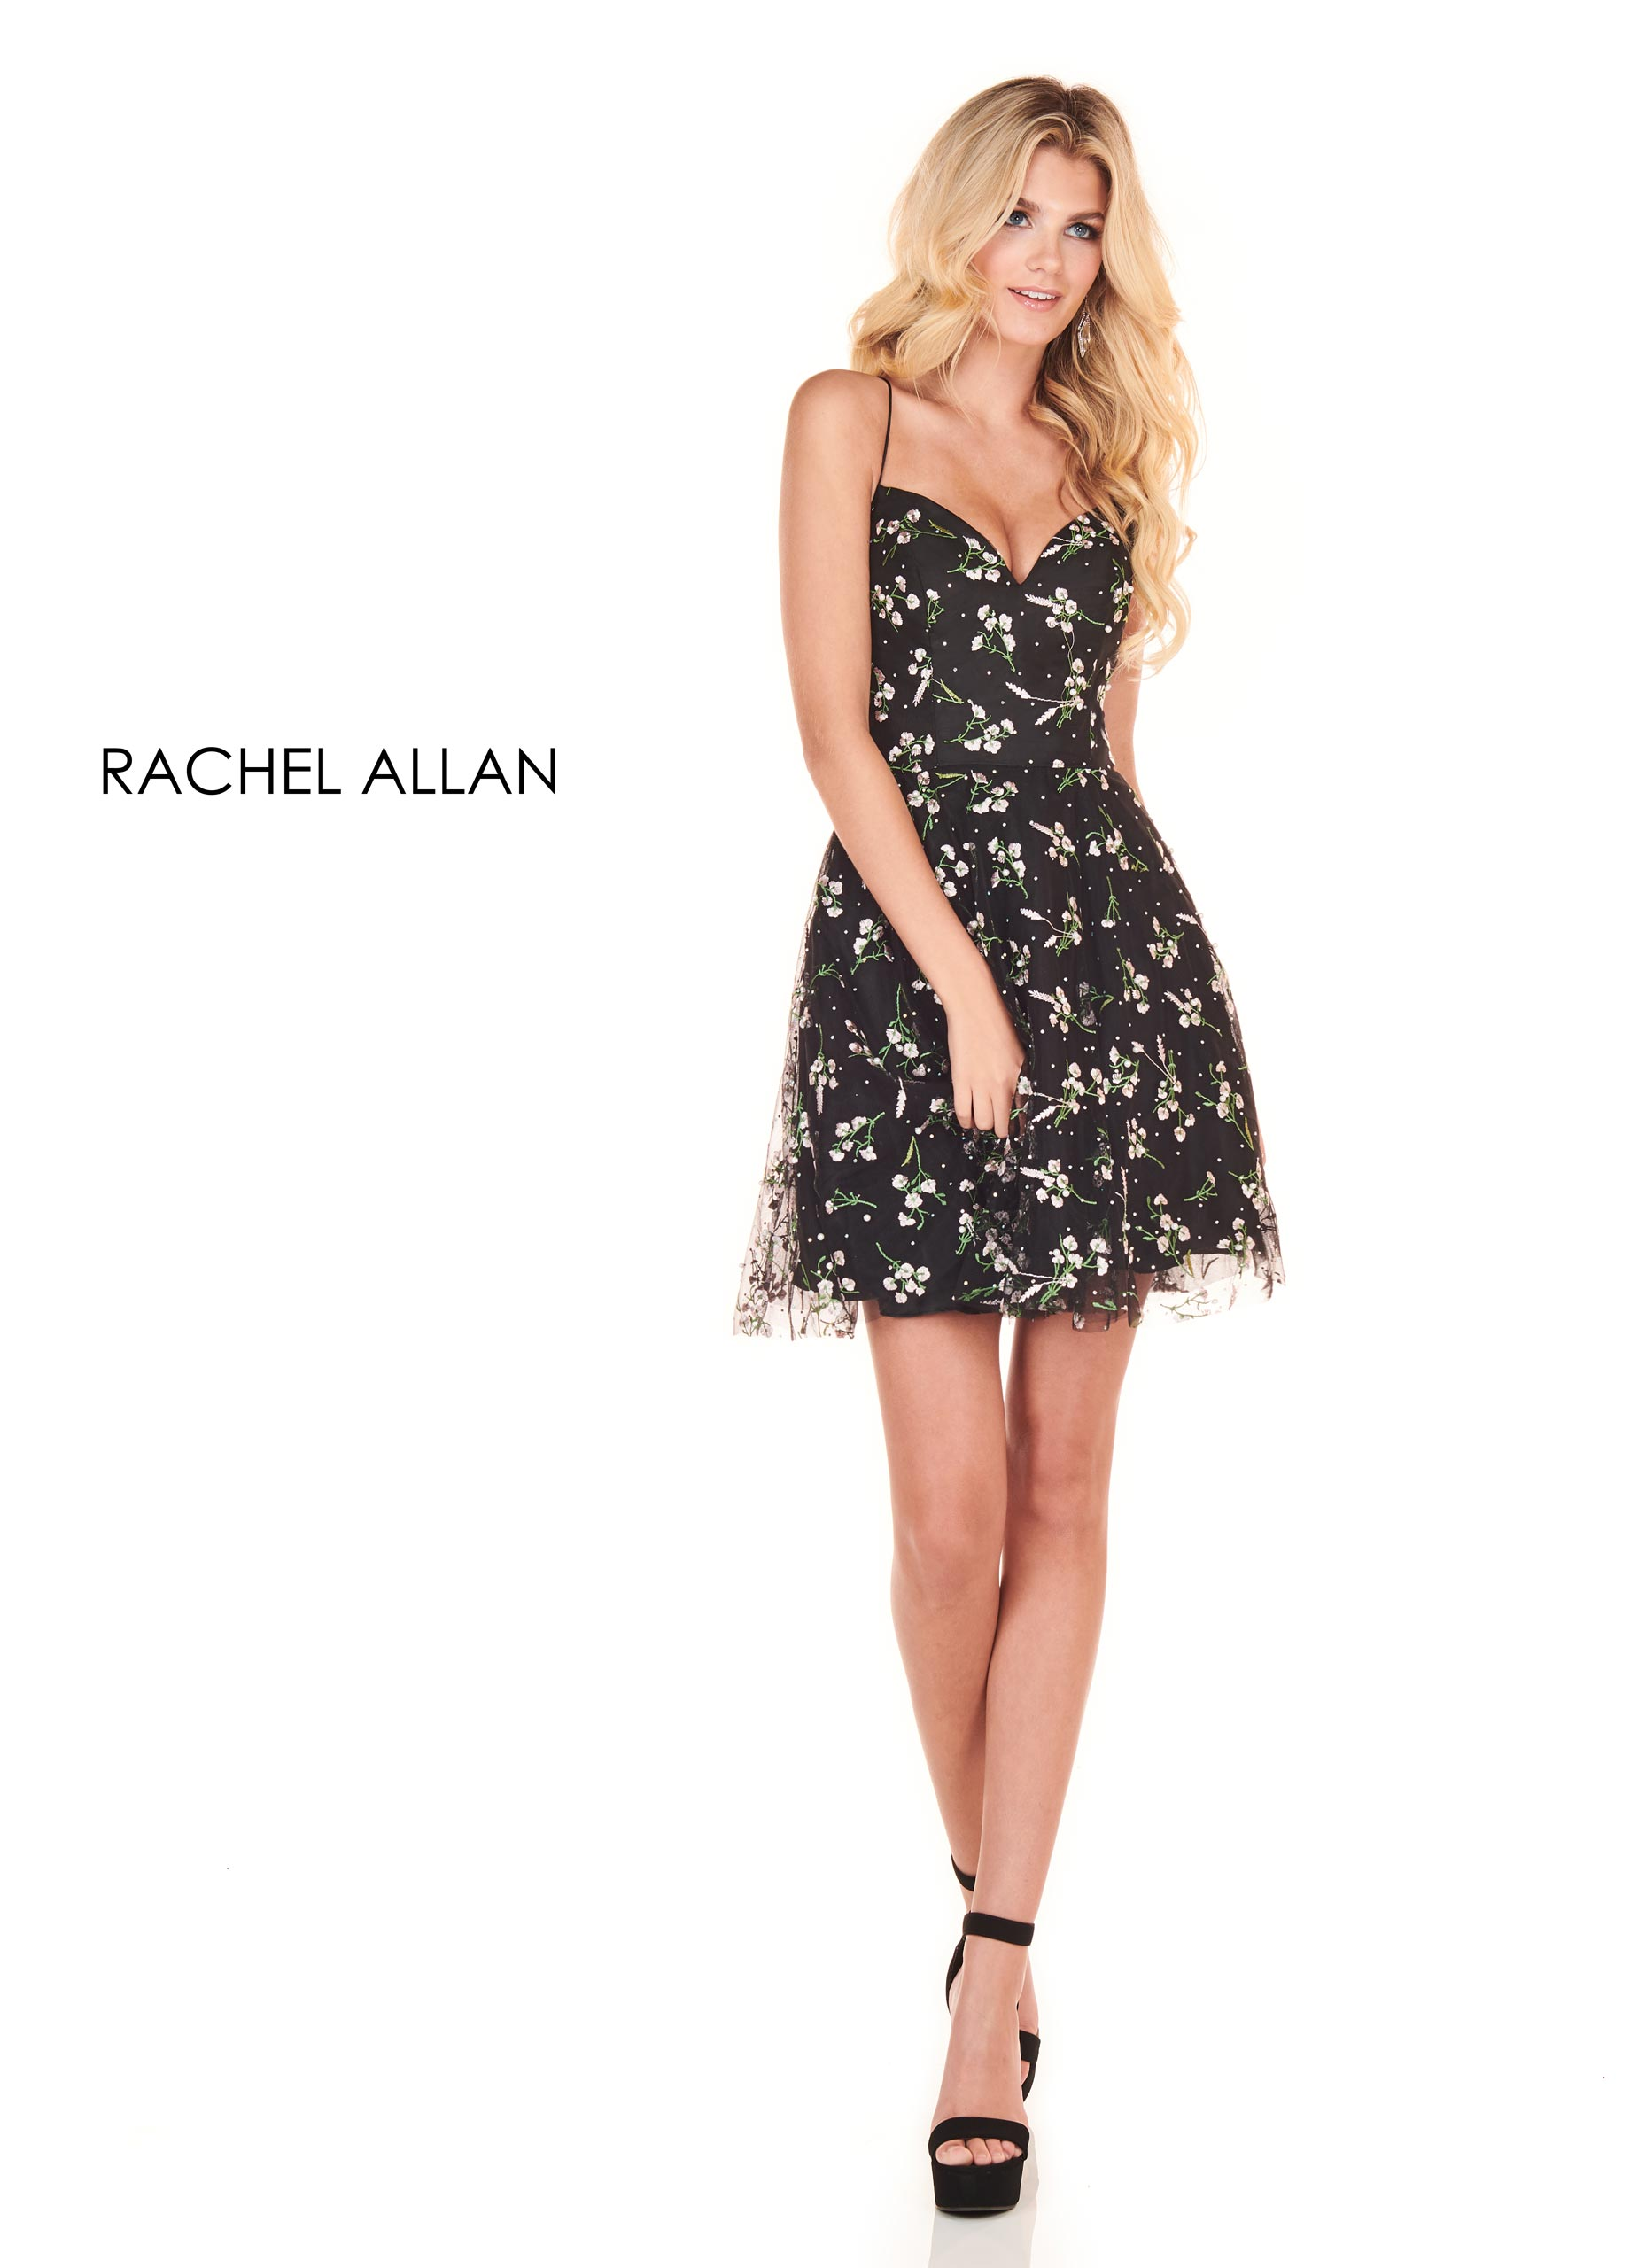 Sweetheart A-Line Homecoming Dresses in Black Color